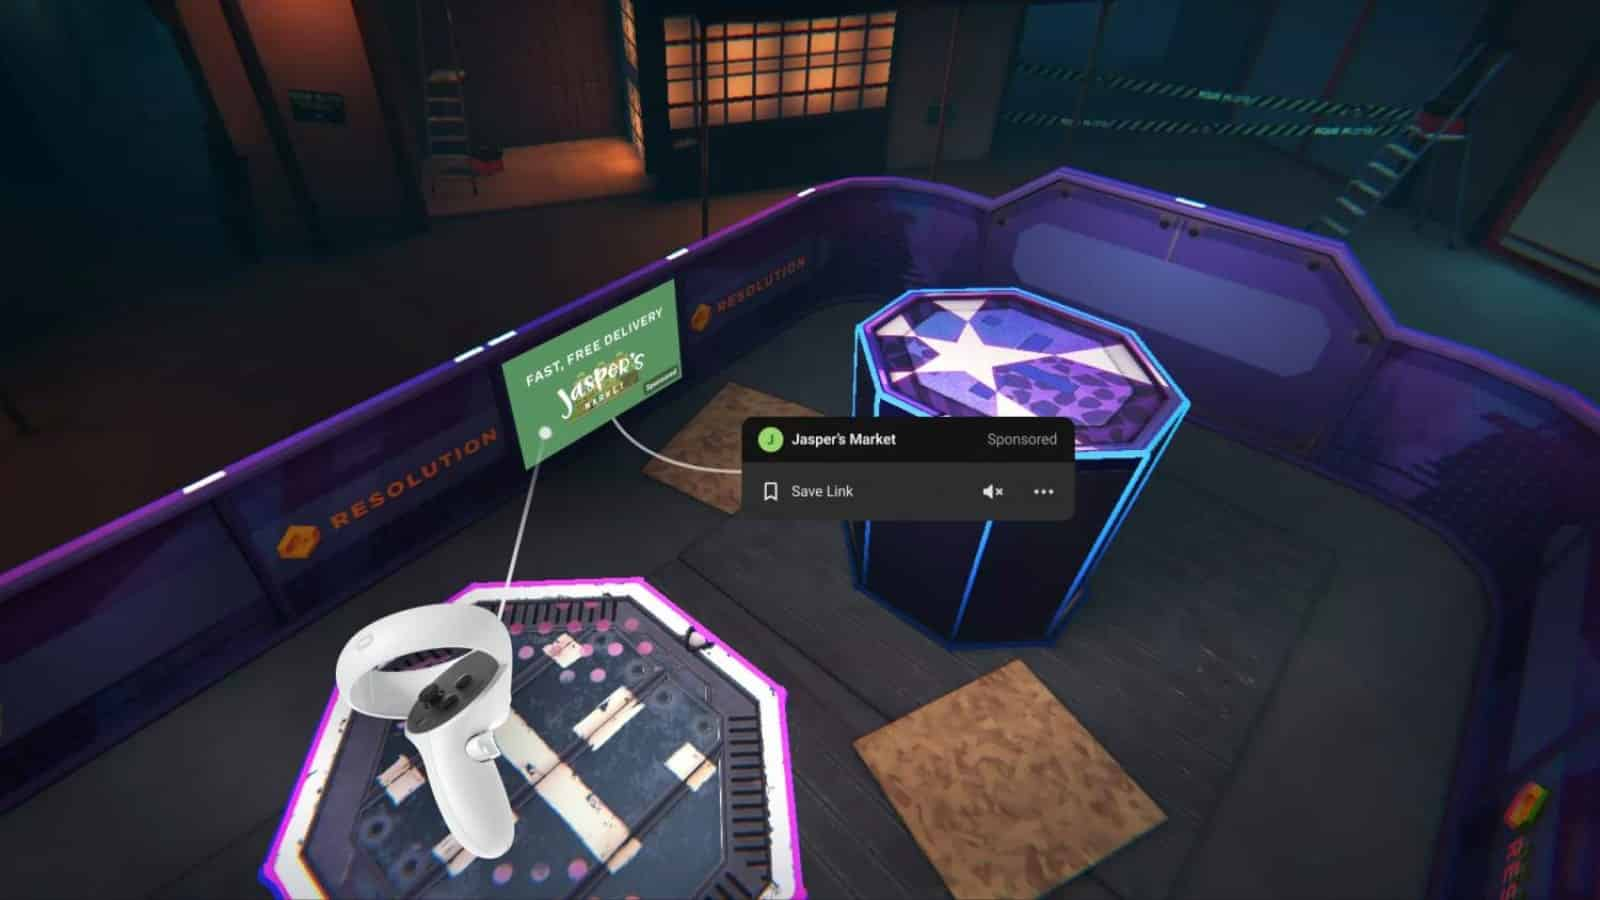 vr game playing on oculus quest showing the upcoming in-game advertising